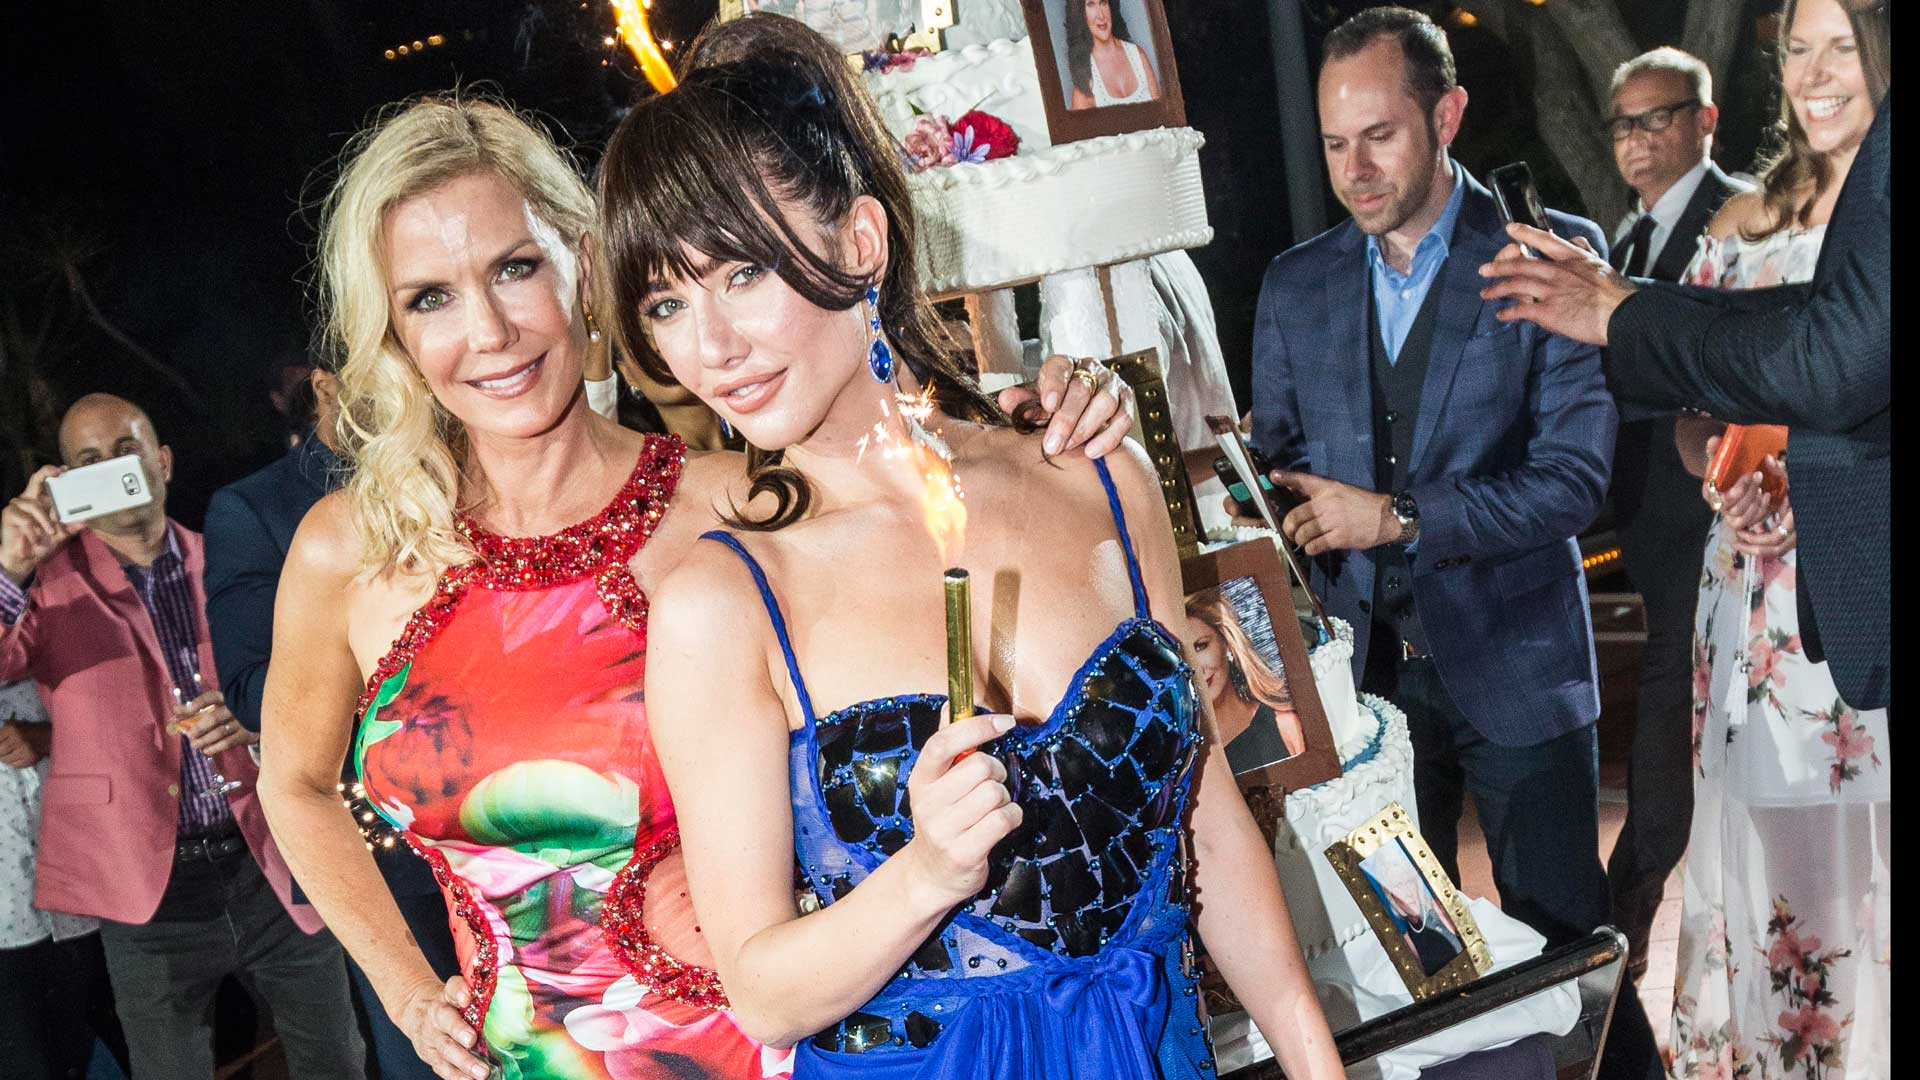 Katherine Kelly Lang puts her arm around Jacqueline MacInnes Wood, who's ready to light things up.